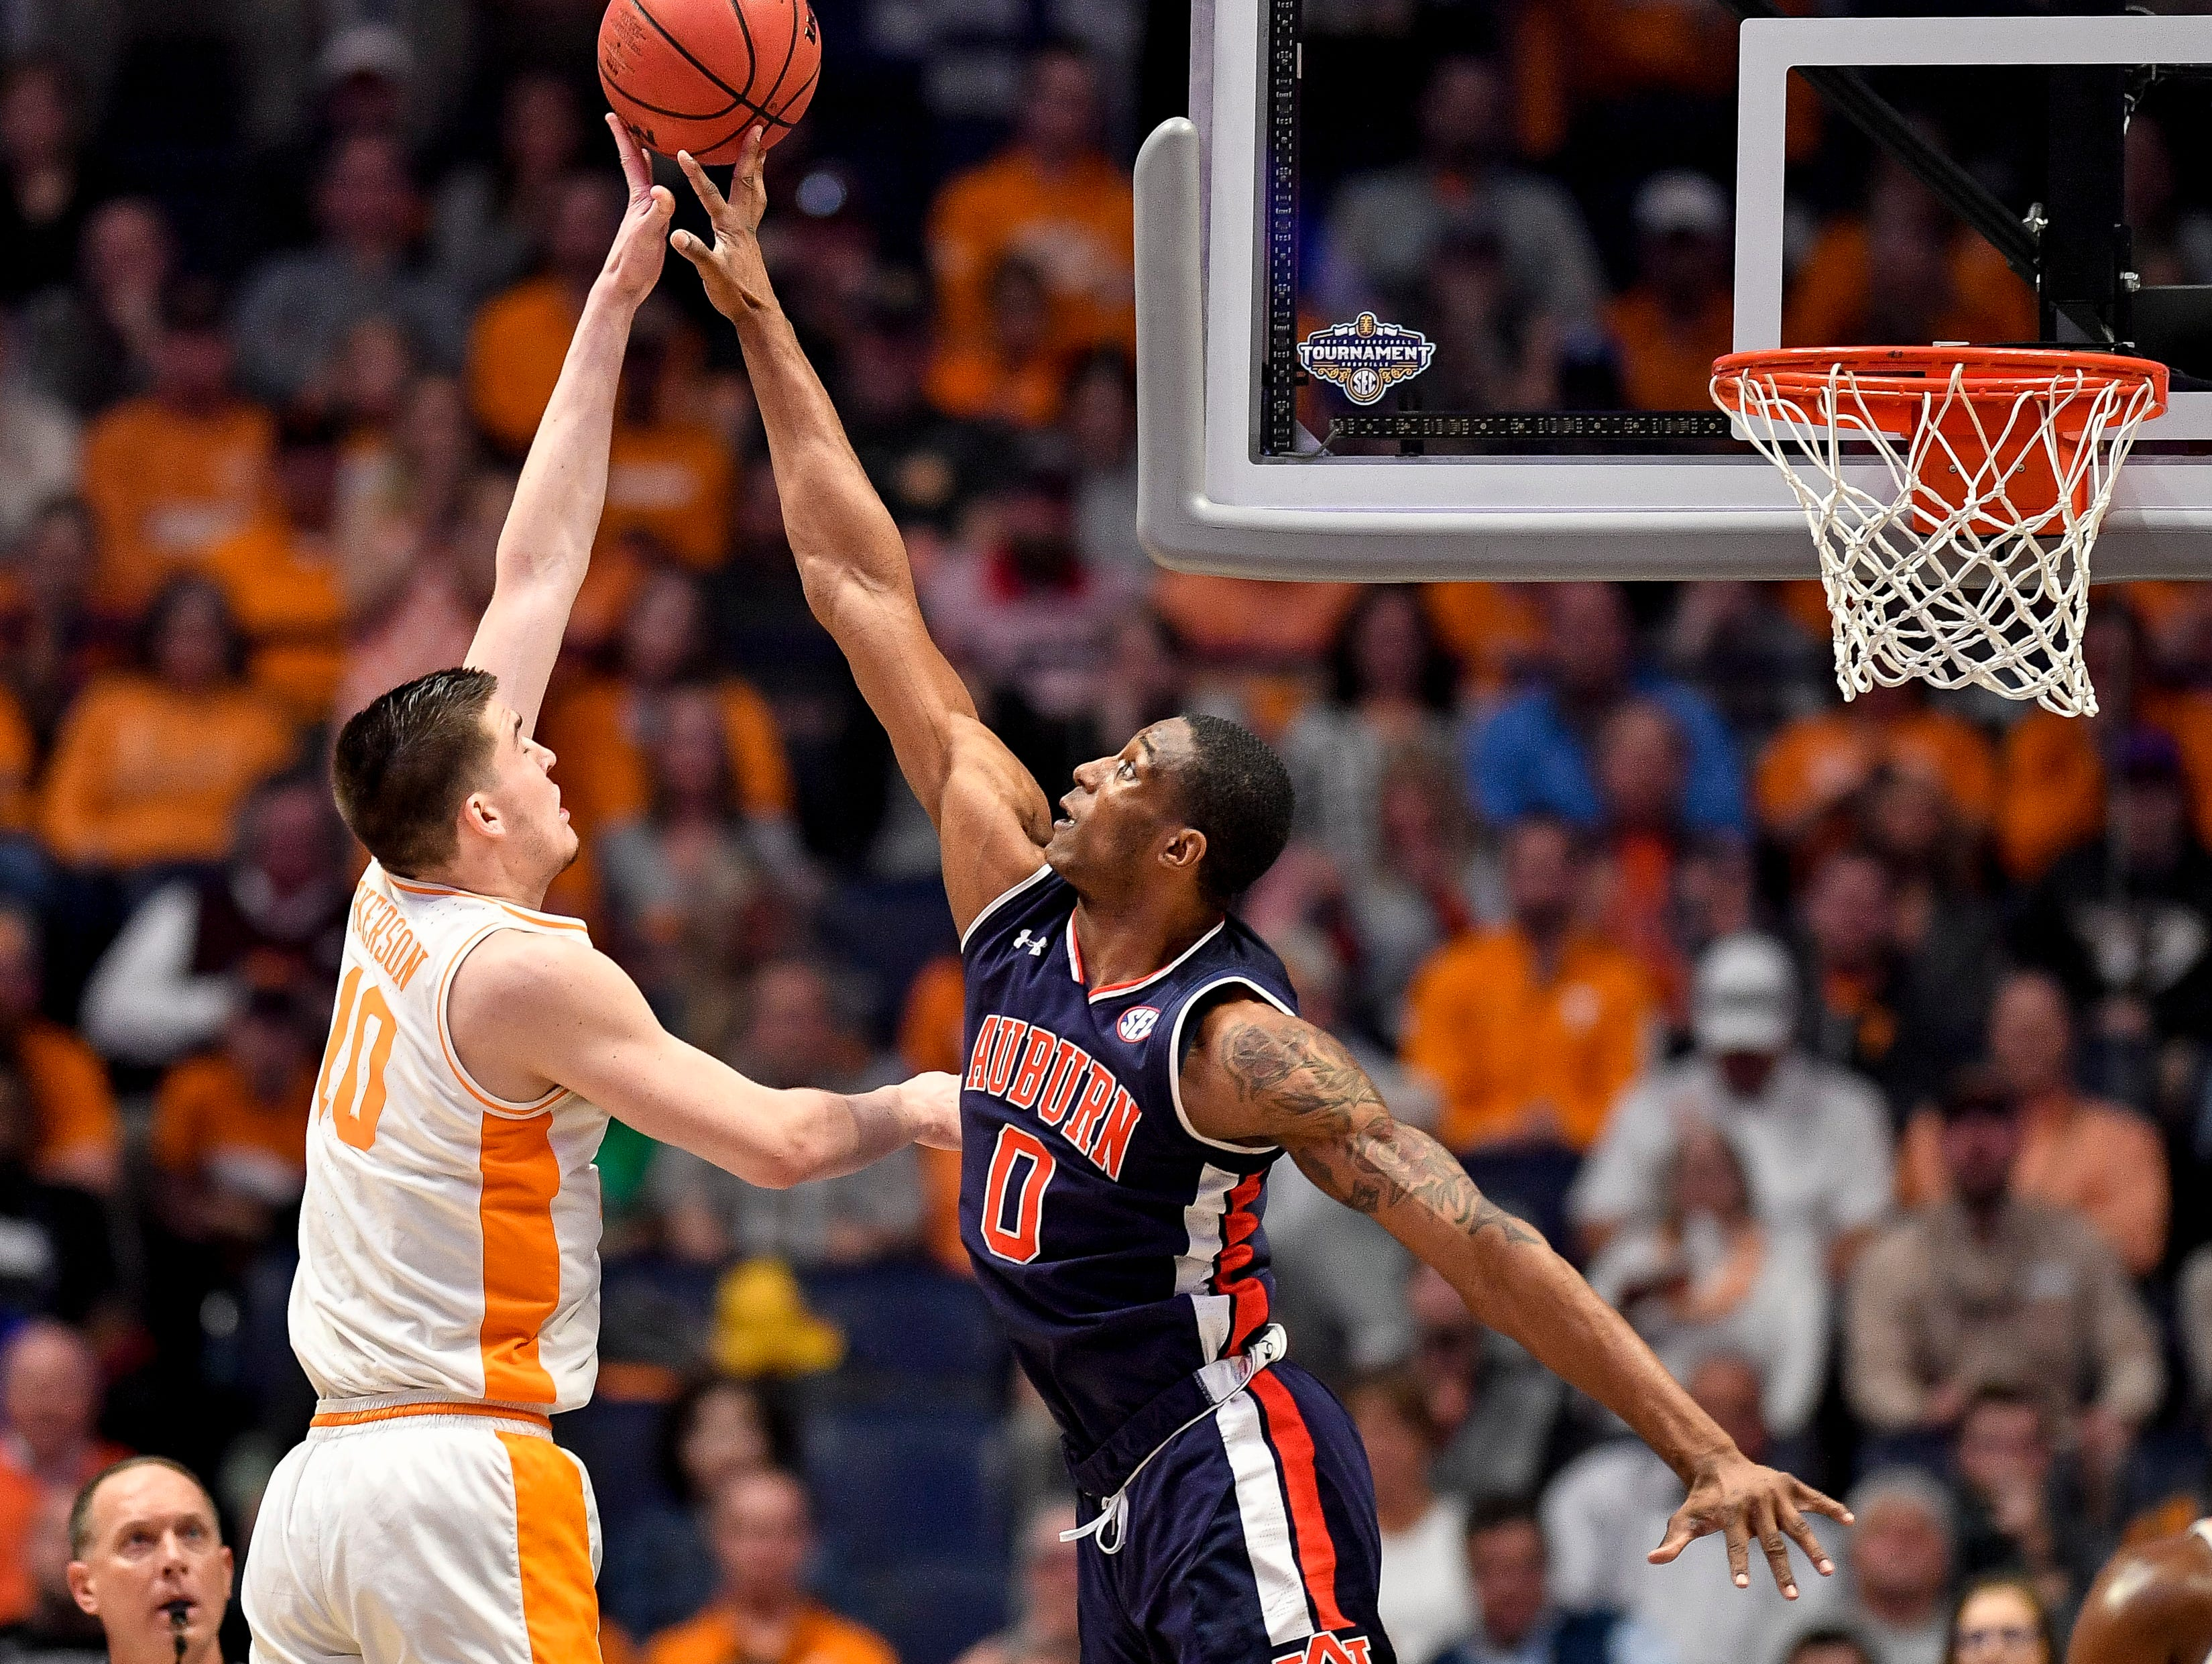 Auburn forward Horace Spencer (0) blocks Tennessee forward John Fulkerson (10) during the first half of the SEC Men's Basketball Tournament championship game at Bridgestone Arena in Nashville, Tenn., Sunday, March 17, 2019.